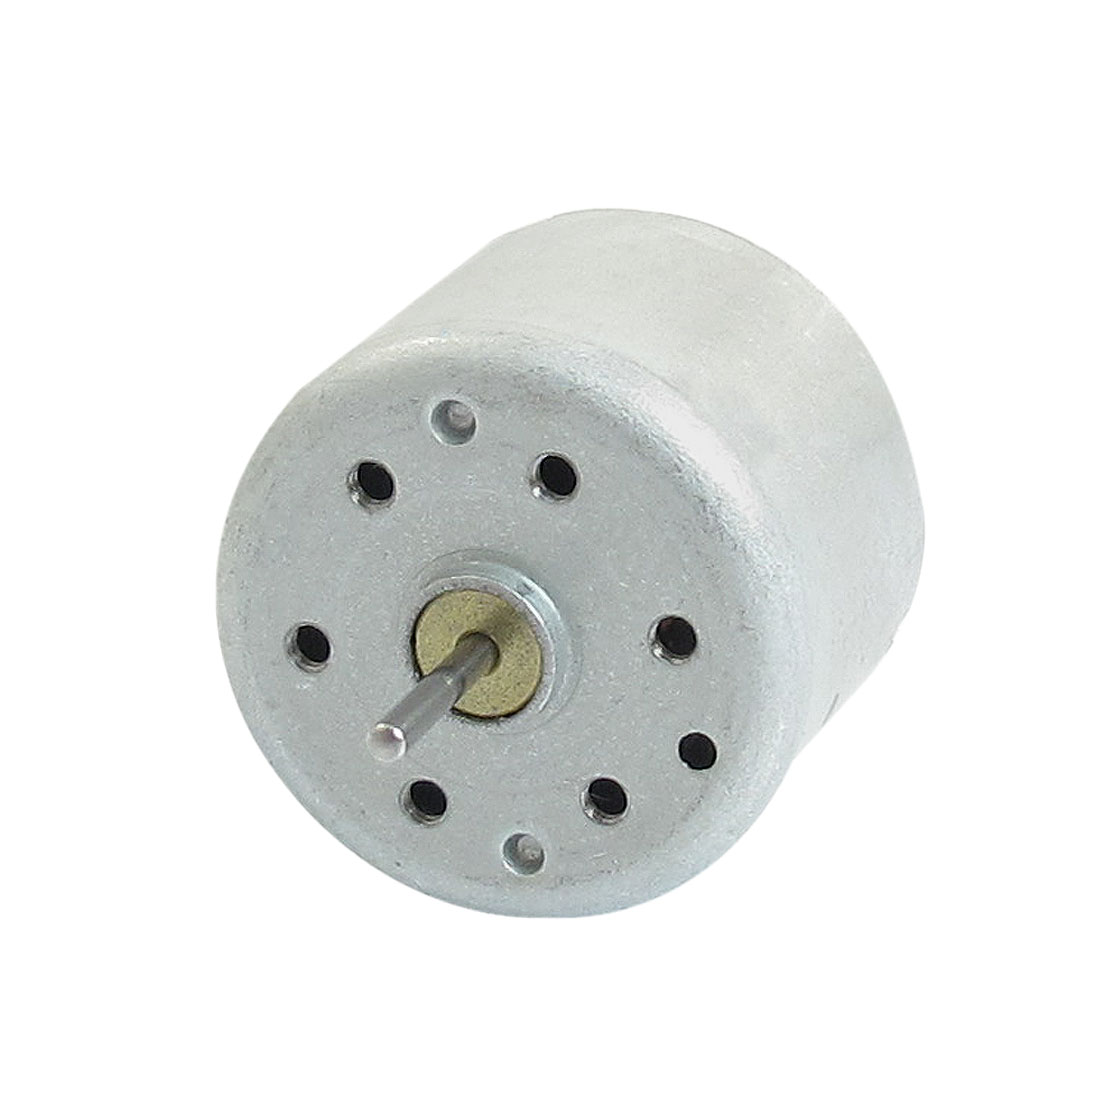 1700-3400 RPM 3-6V High Torque Cylinder Electric Mini DC Motor